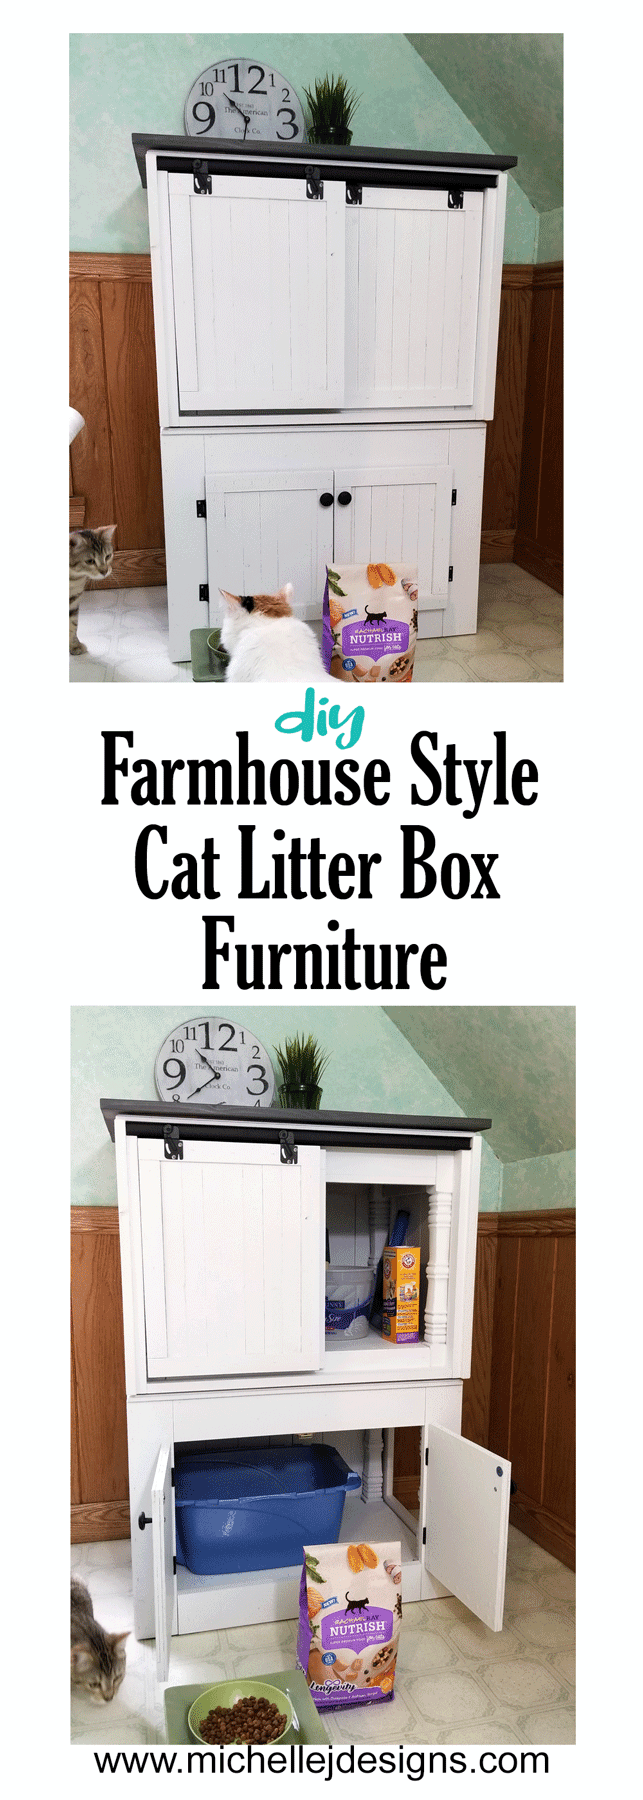 We transformed two end tables into a DIY farmhouse style cat litter box furniture to conceal a litter box. #NutrishForCats #NutrishPets #catfurniture #diy #farmhousestyle - www.michellejdesigns.com